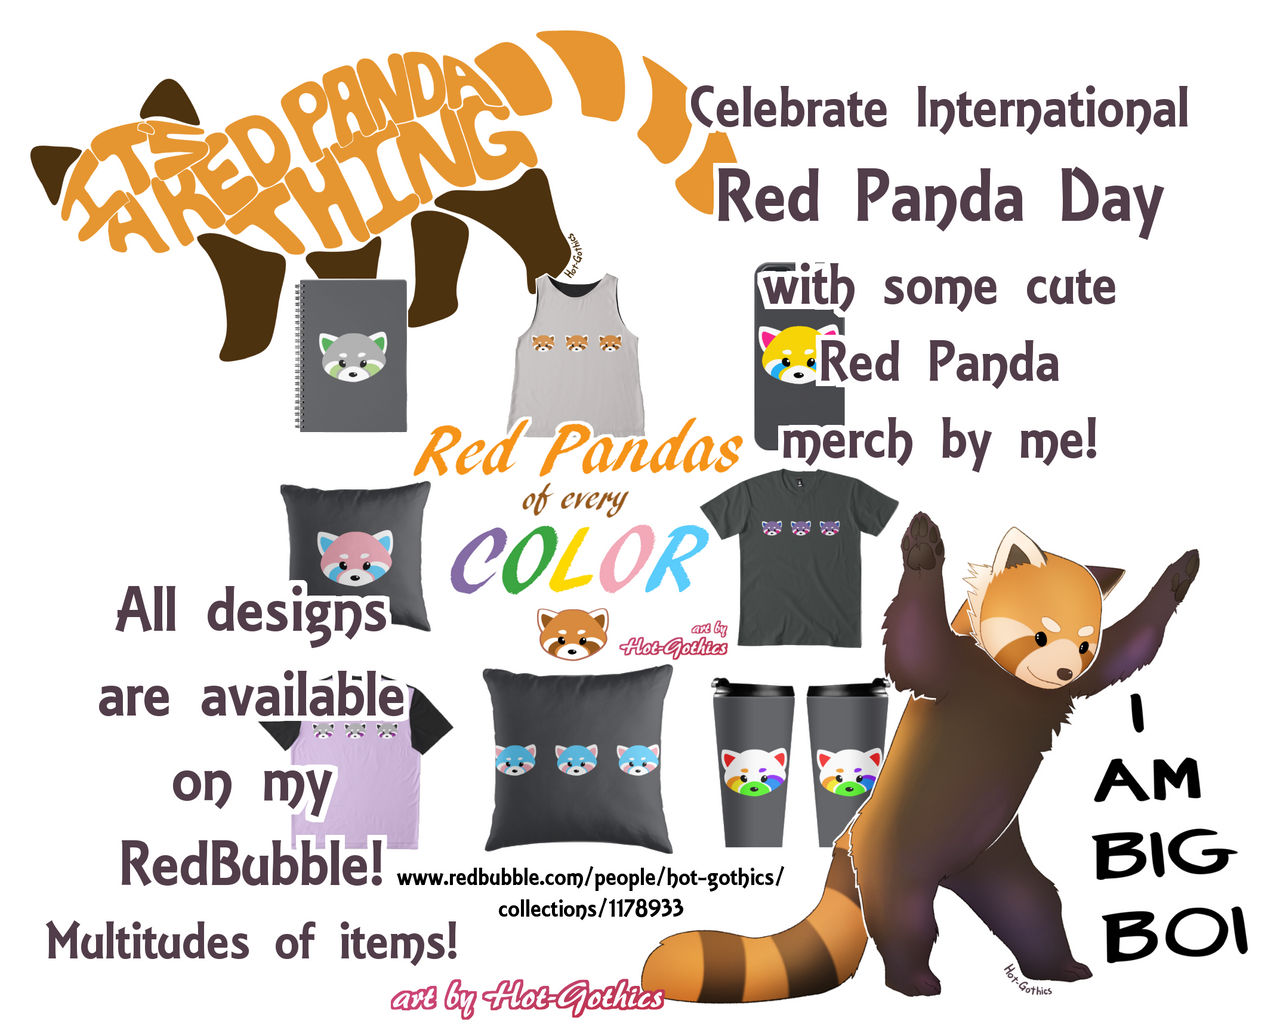 Red Panda Designs by Hot-Gothics